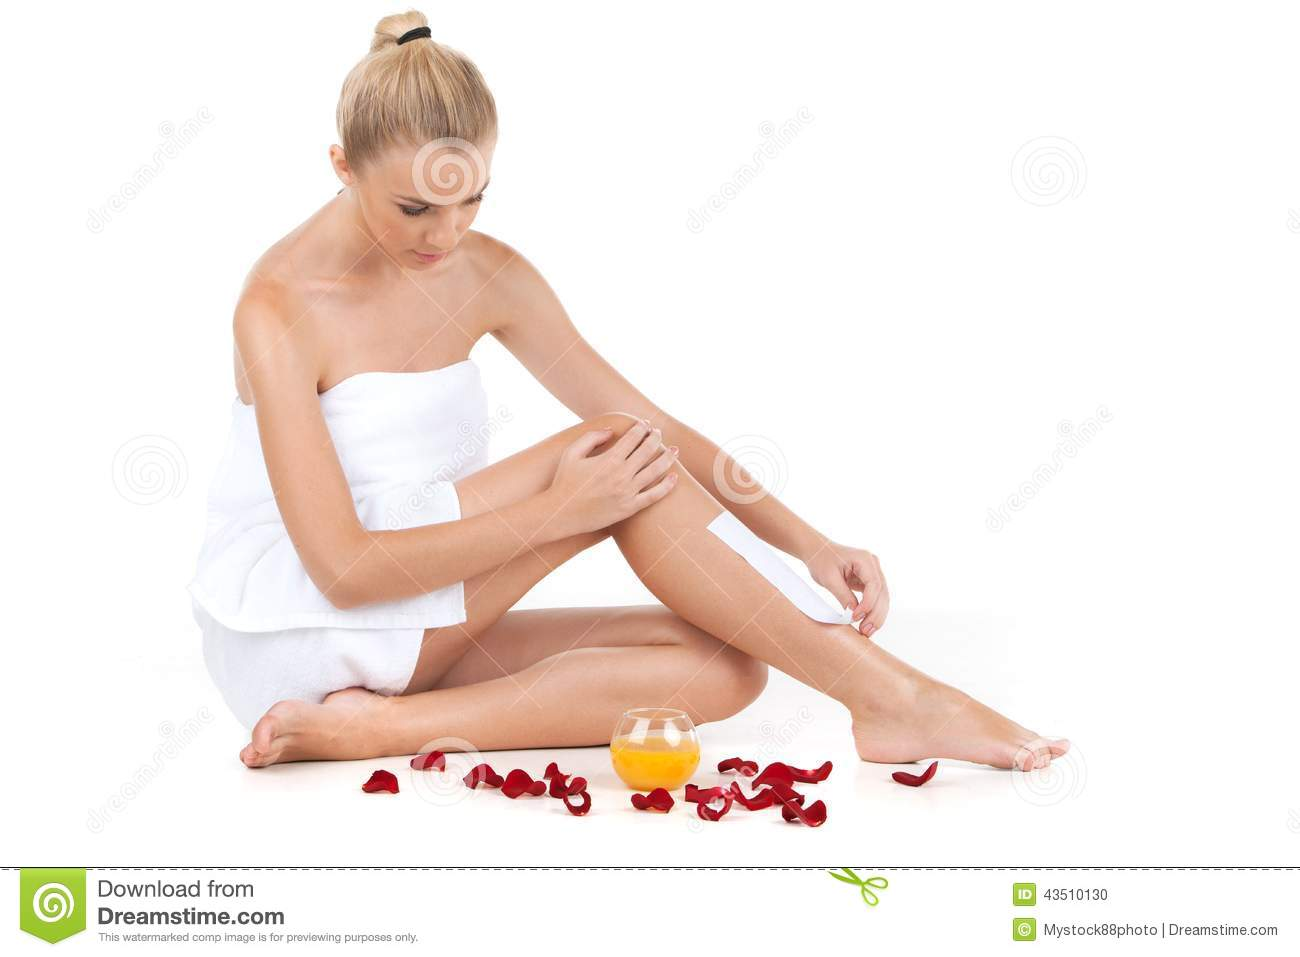 Depilation Of Female Legs With Waxing On White Background